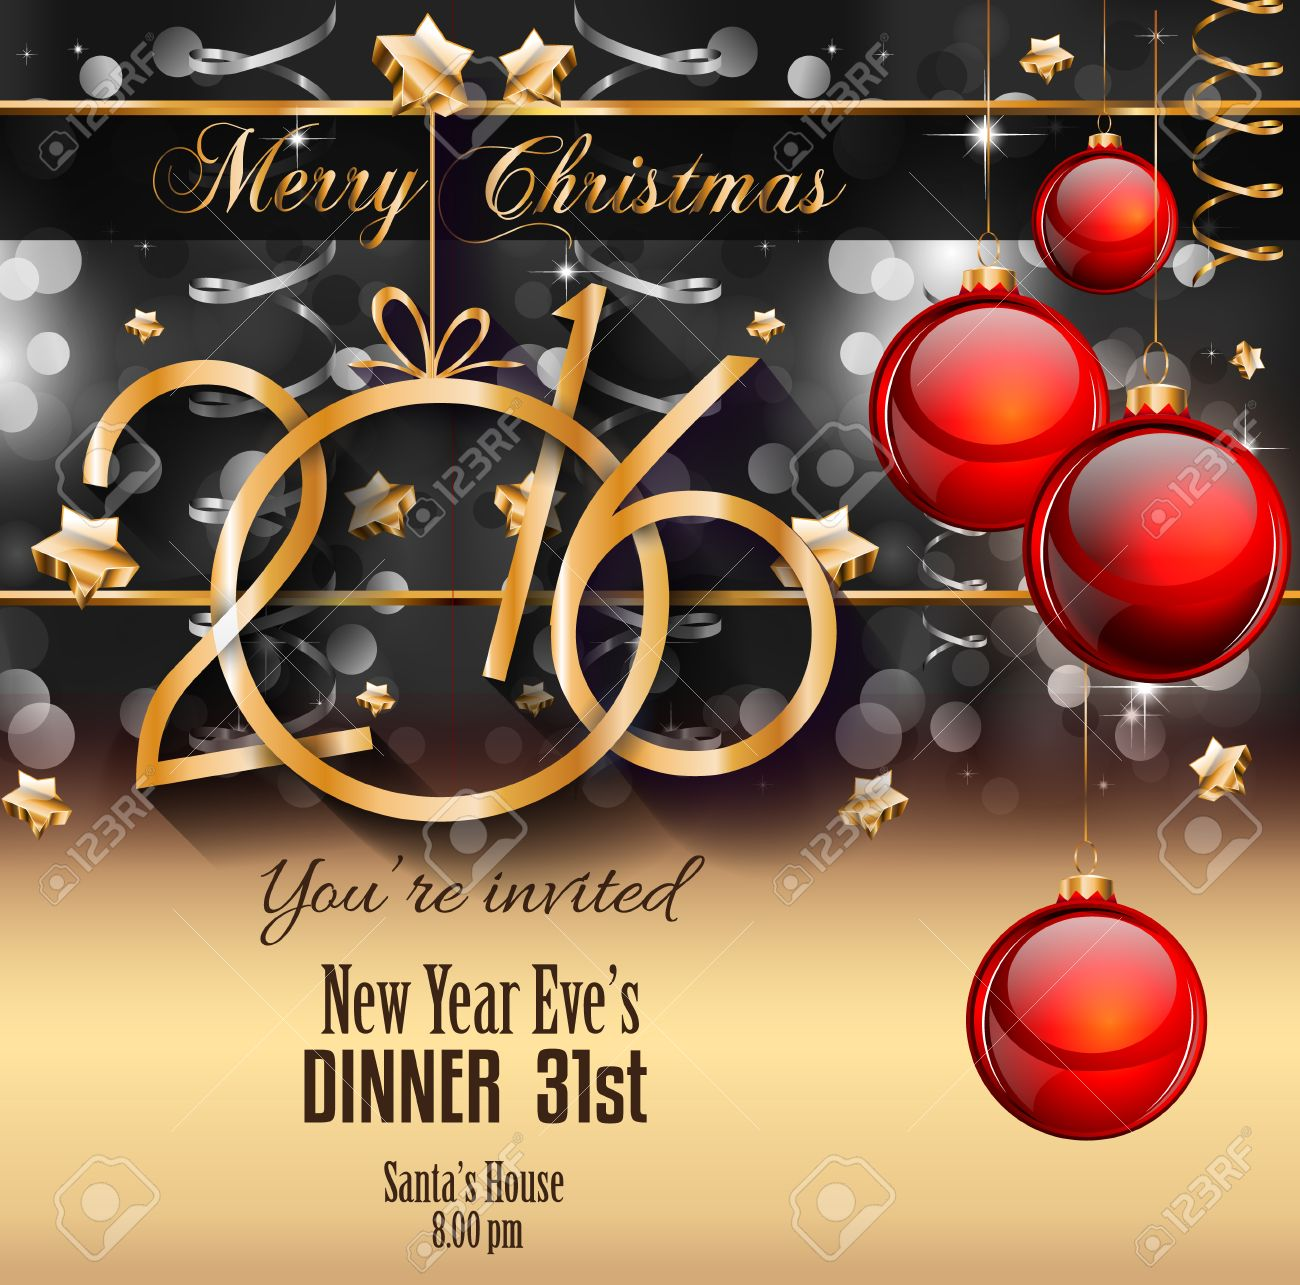 happy new year background for your christmas flyers dinner 2016 happy new year background for your christmas flyers dinner invitations festive posters